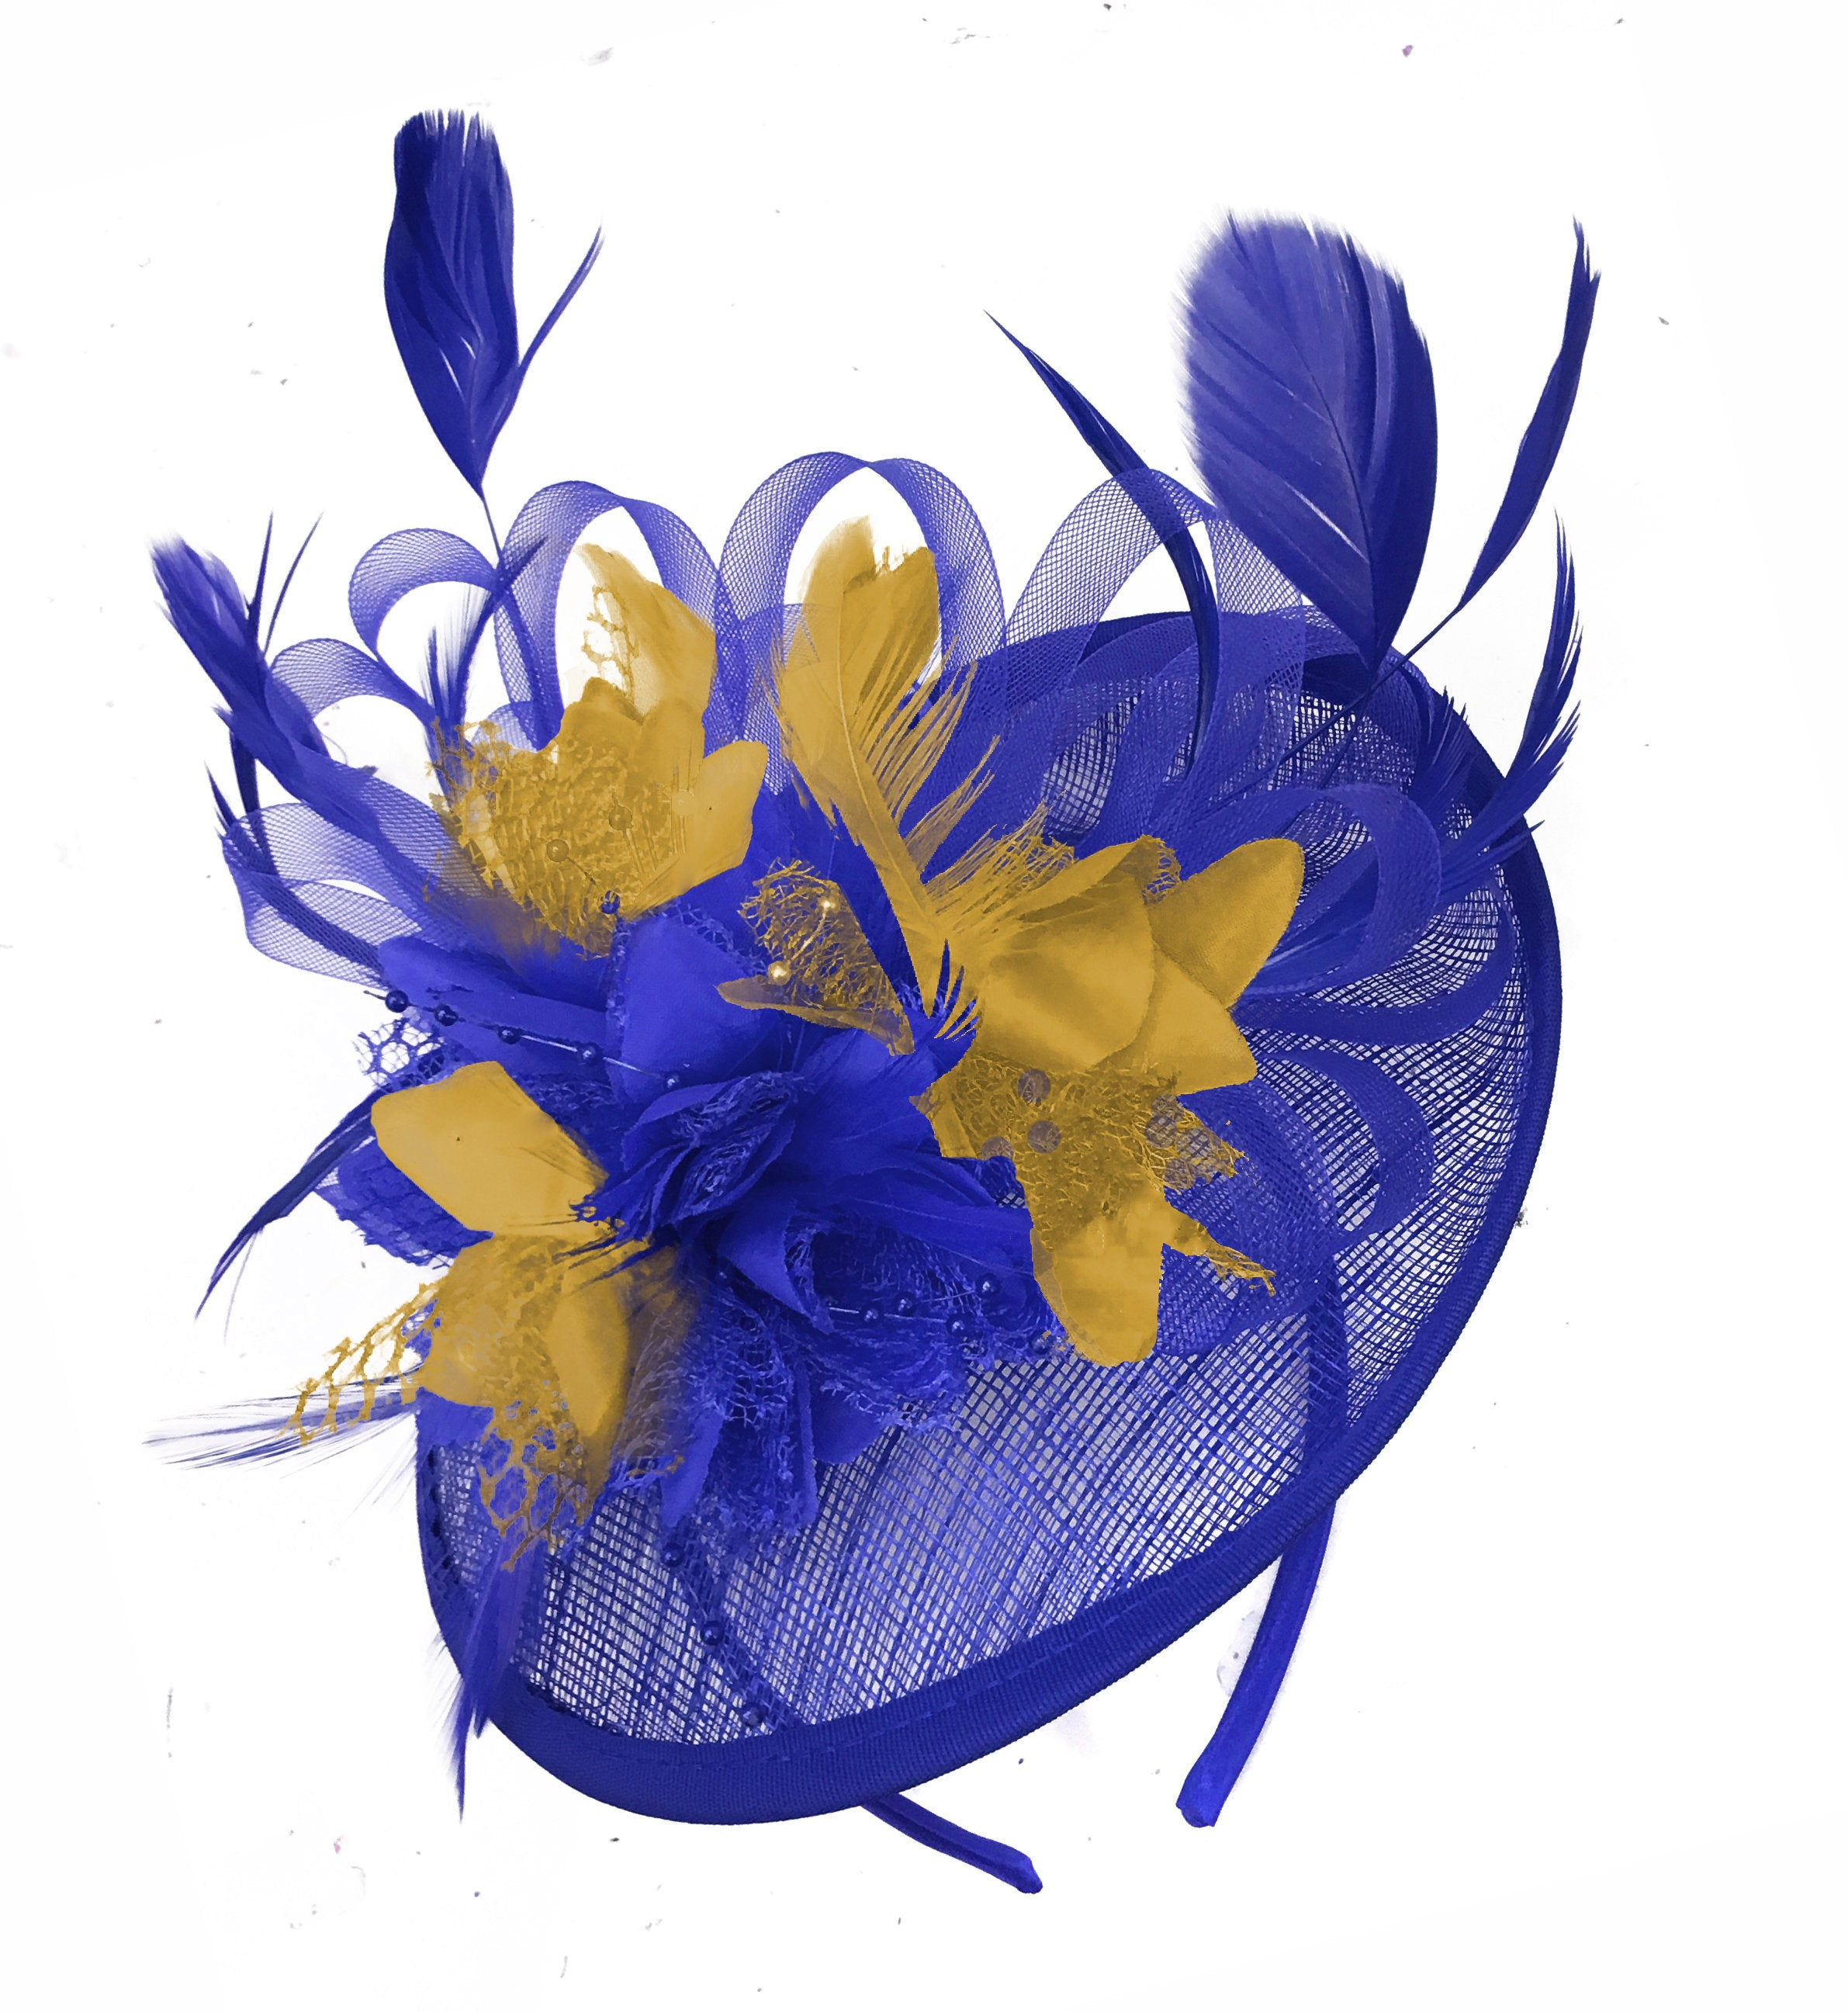 Caprilite Blue and Mustard Sinamay Disc Saucer Fascinator Hat for Women Weddings Headband